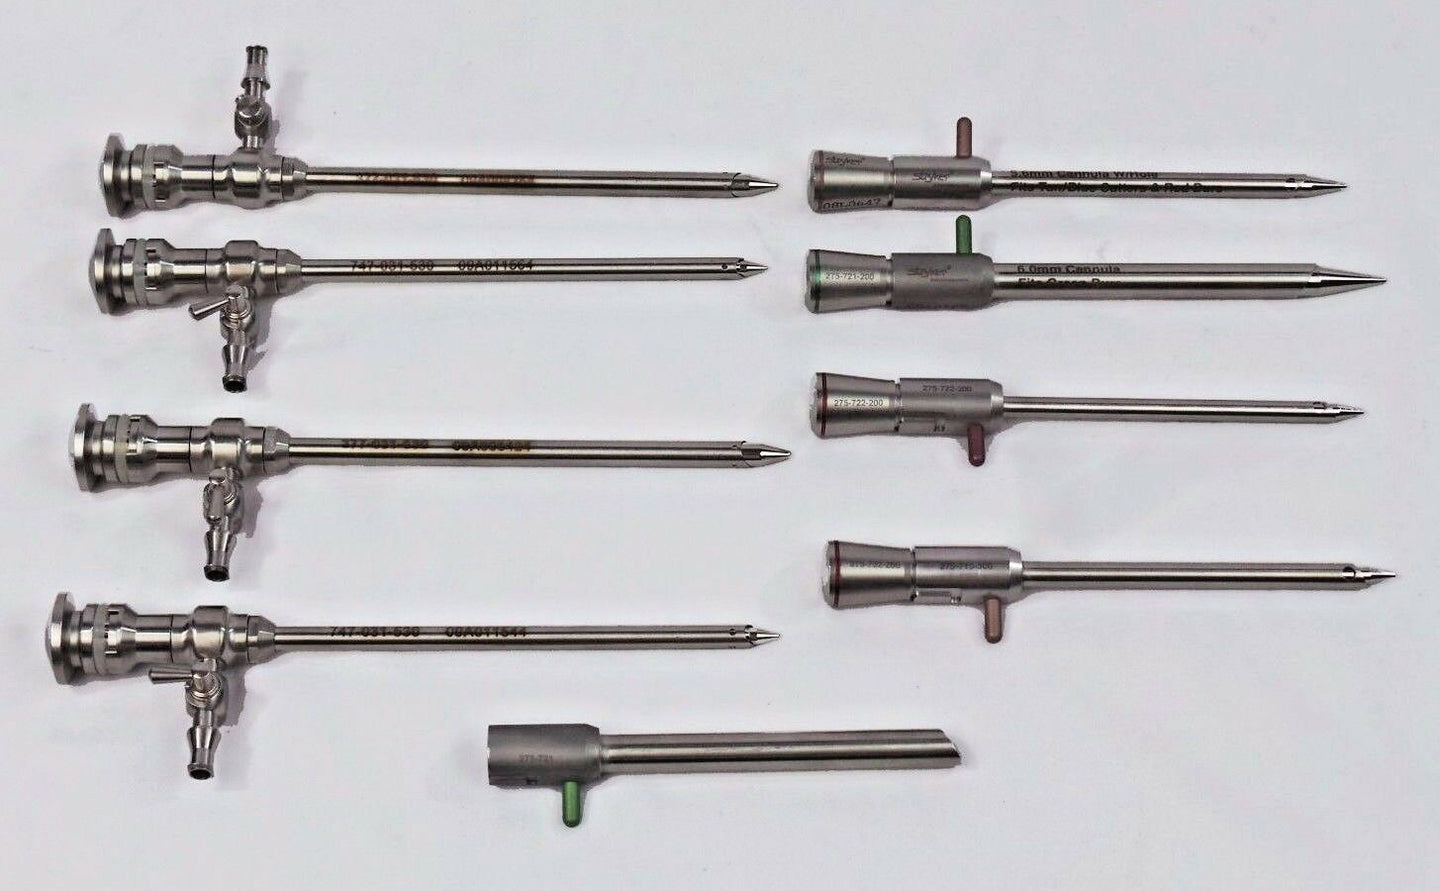 STRYKER 747-031-530 Arthroscope Cannula & Obturator sets Endoscopy 9 piece